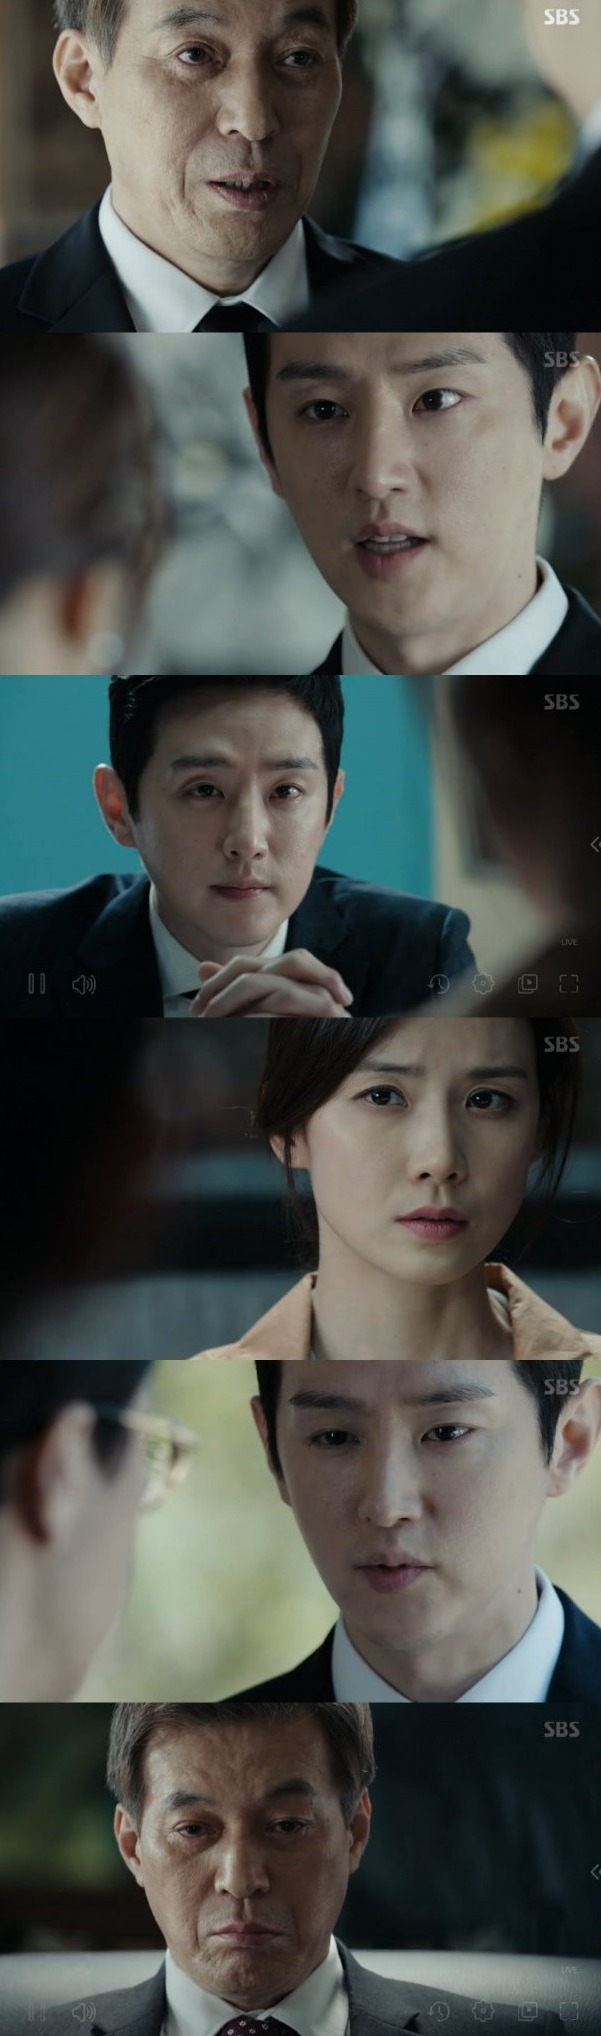 [Spoiler] Added episode 11 captures for the Korean drama 'Whisper'